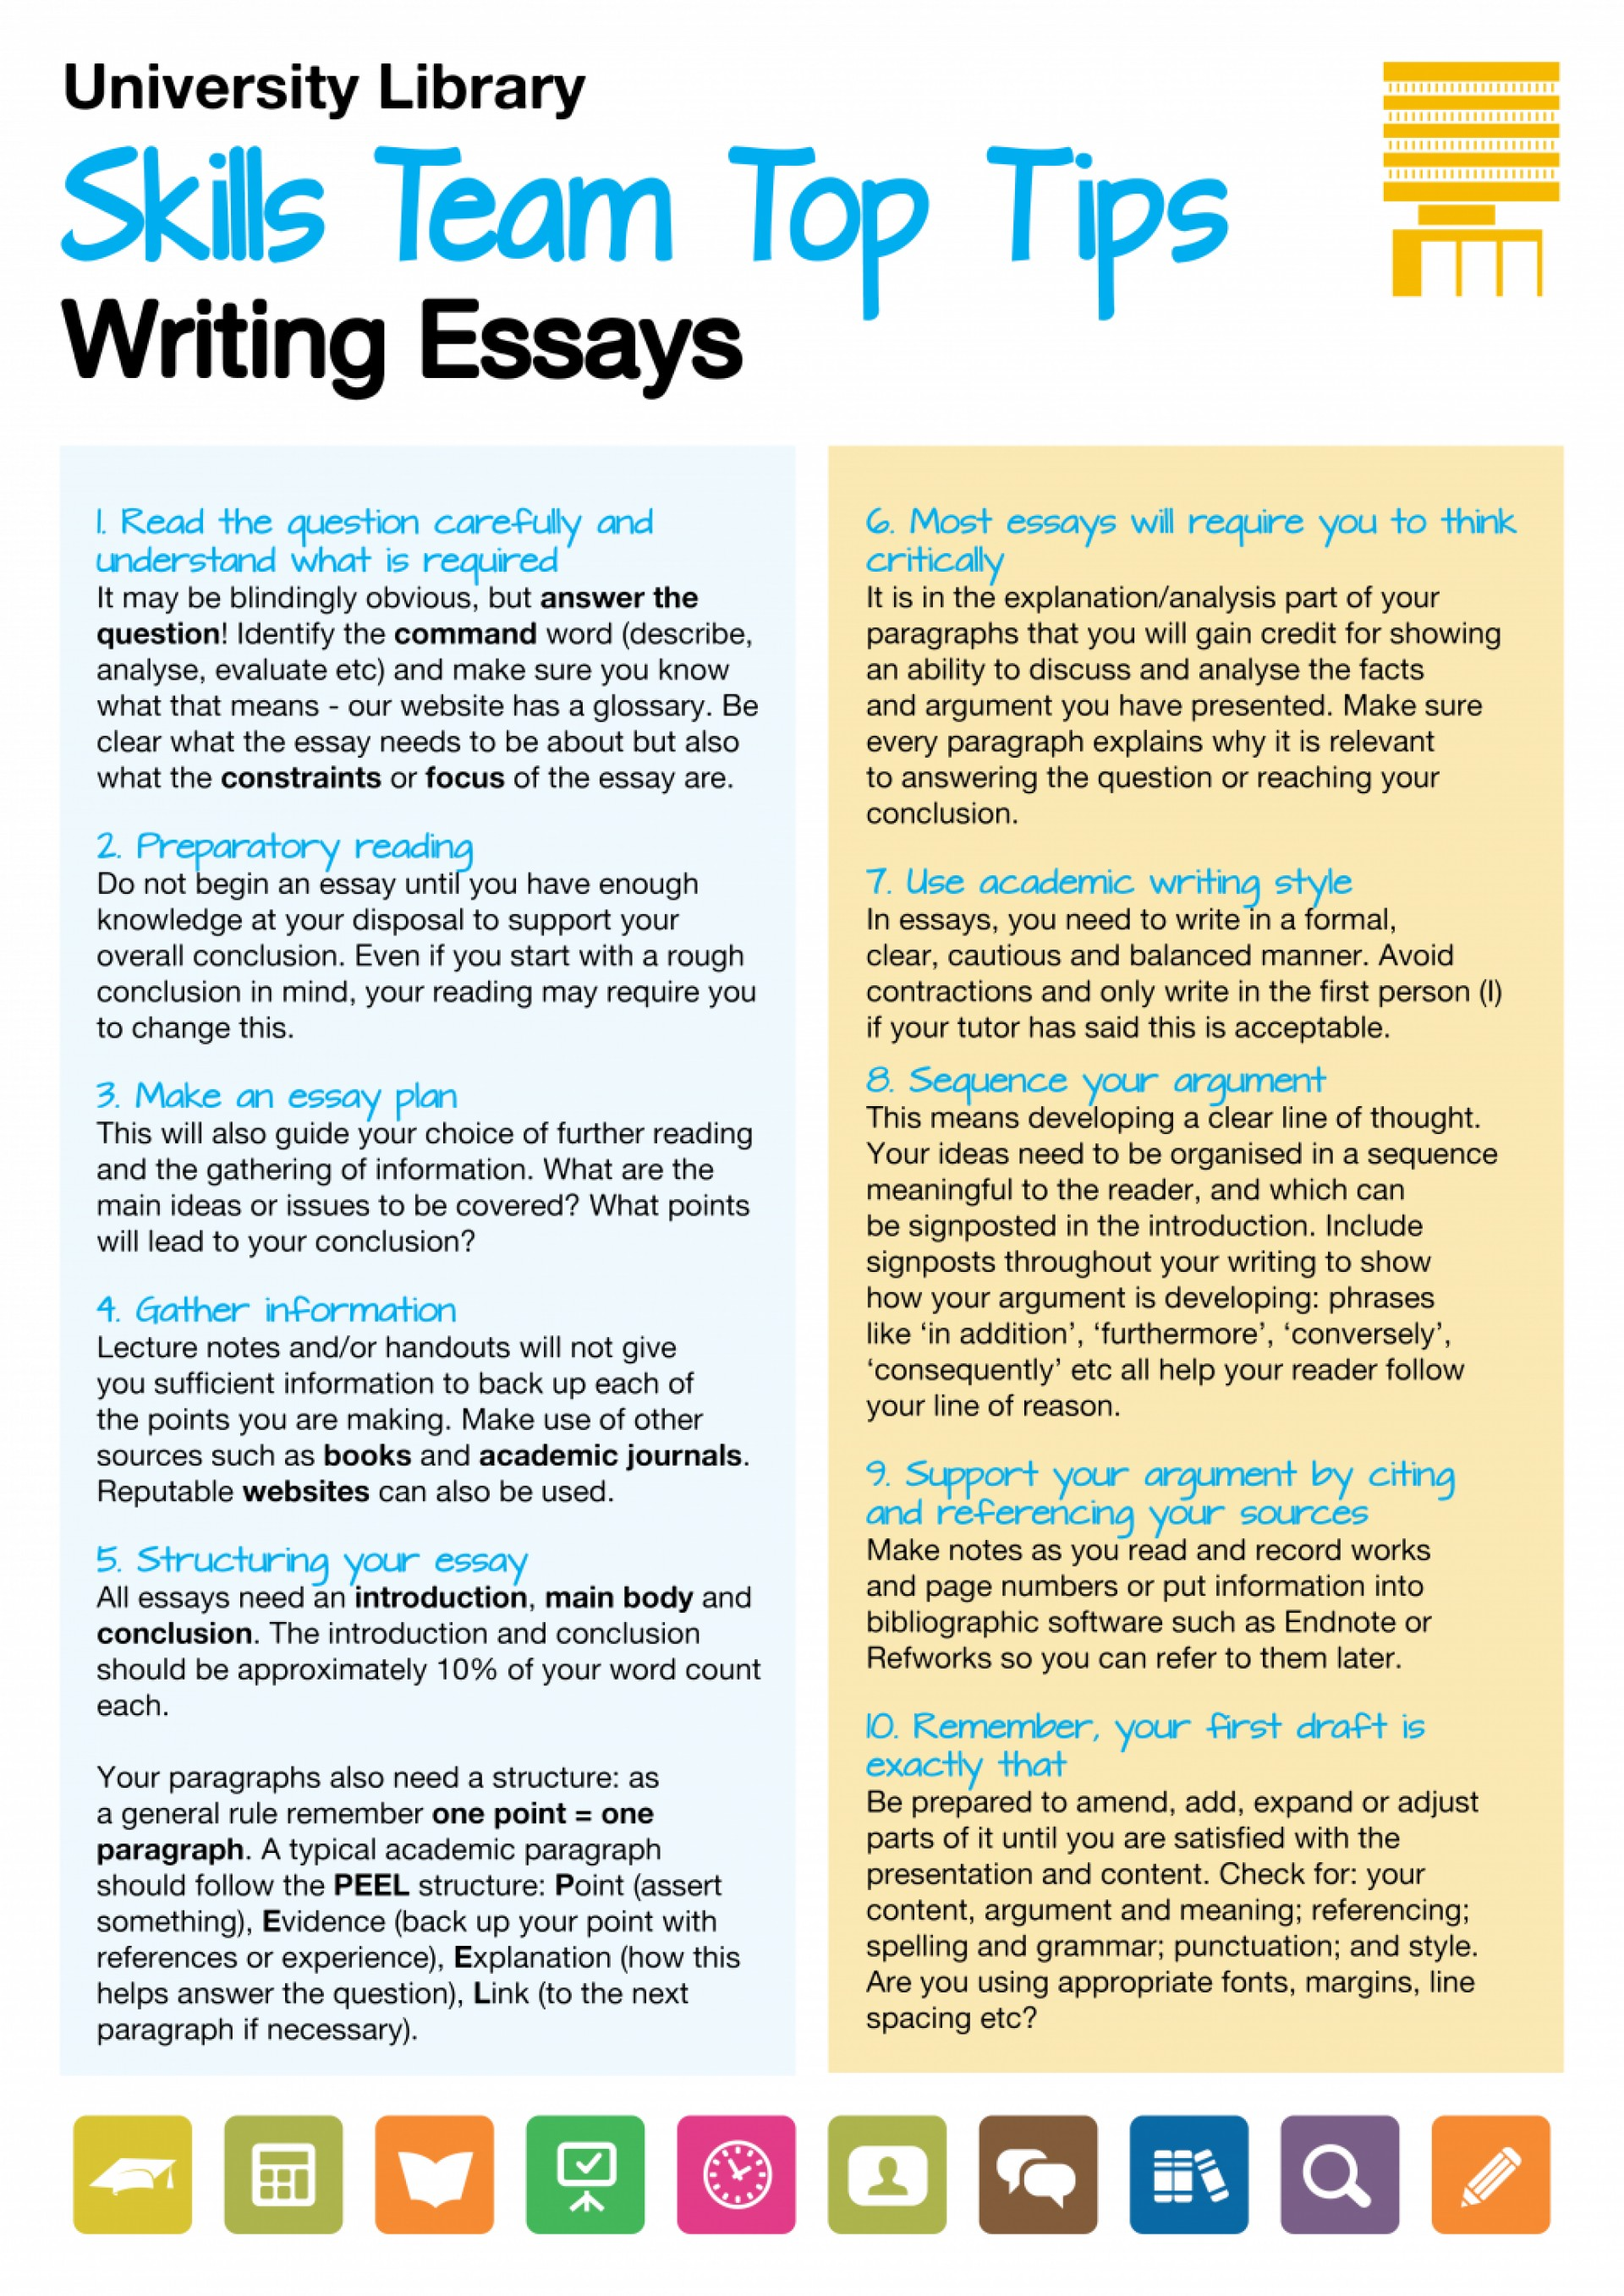 006 Parts Of Persuasive Essay Example Writing Introduction Previewverifierxkjhtnbdqxbvdecrd1zvlvtdue5vyqn13d8 Three Pdf Imposing 6 A 1920